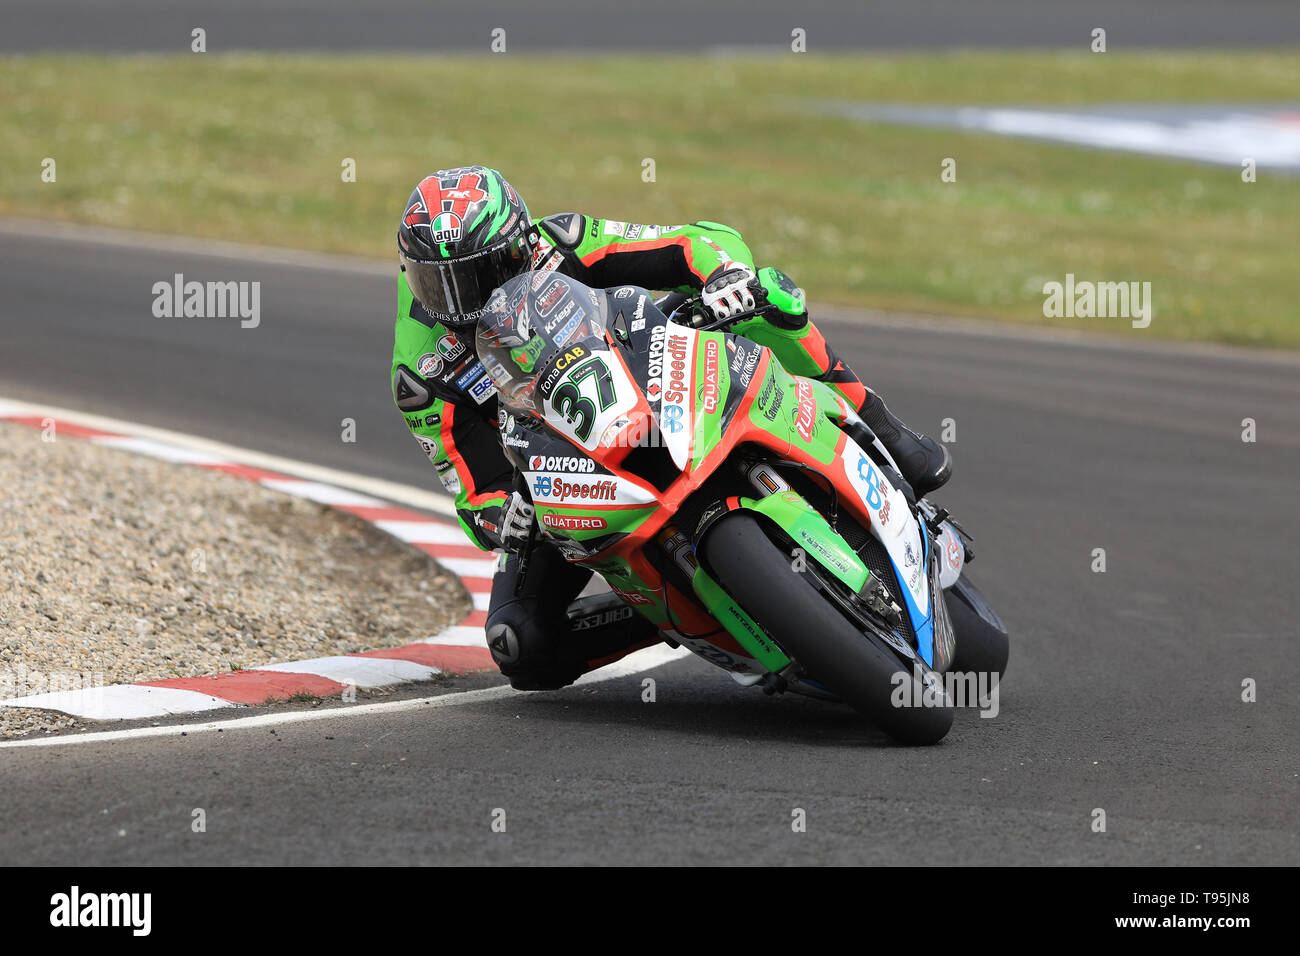 Portrush, Northern Ireland. 16th May, 2019. International North West 200 Motorcycle road racing, Thursday practice and evening racing; James Hillier on the Quattro Plant Wicked Coatings Kawasaki during the SuperBike qualifying session Credit: Action Plus Sports/Alamy Live News - Stock Image